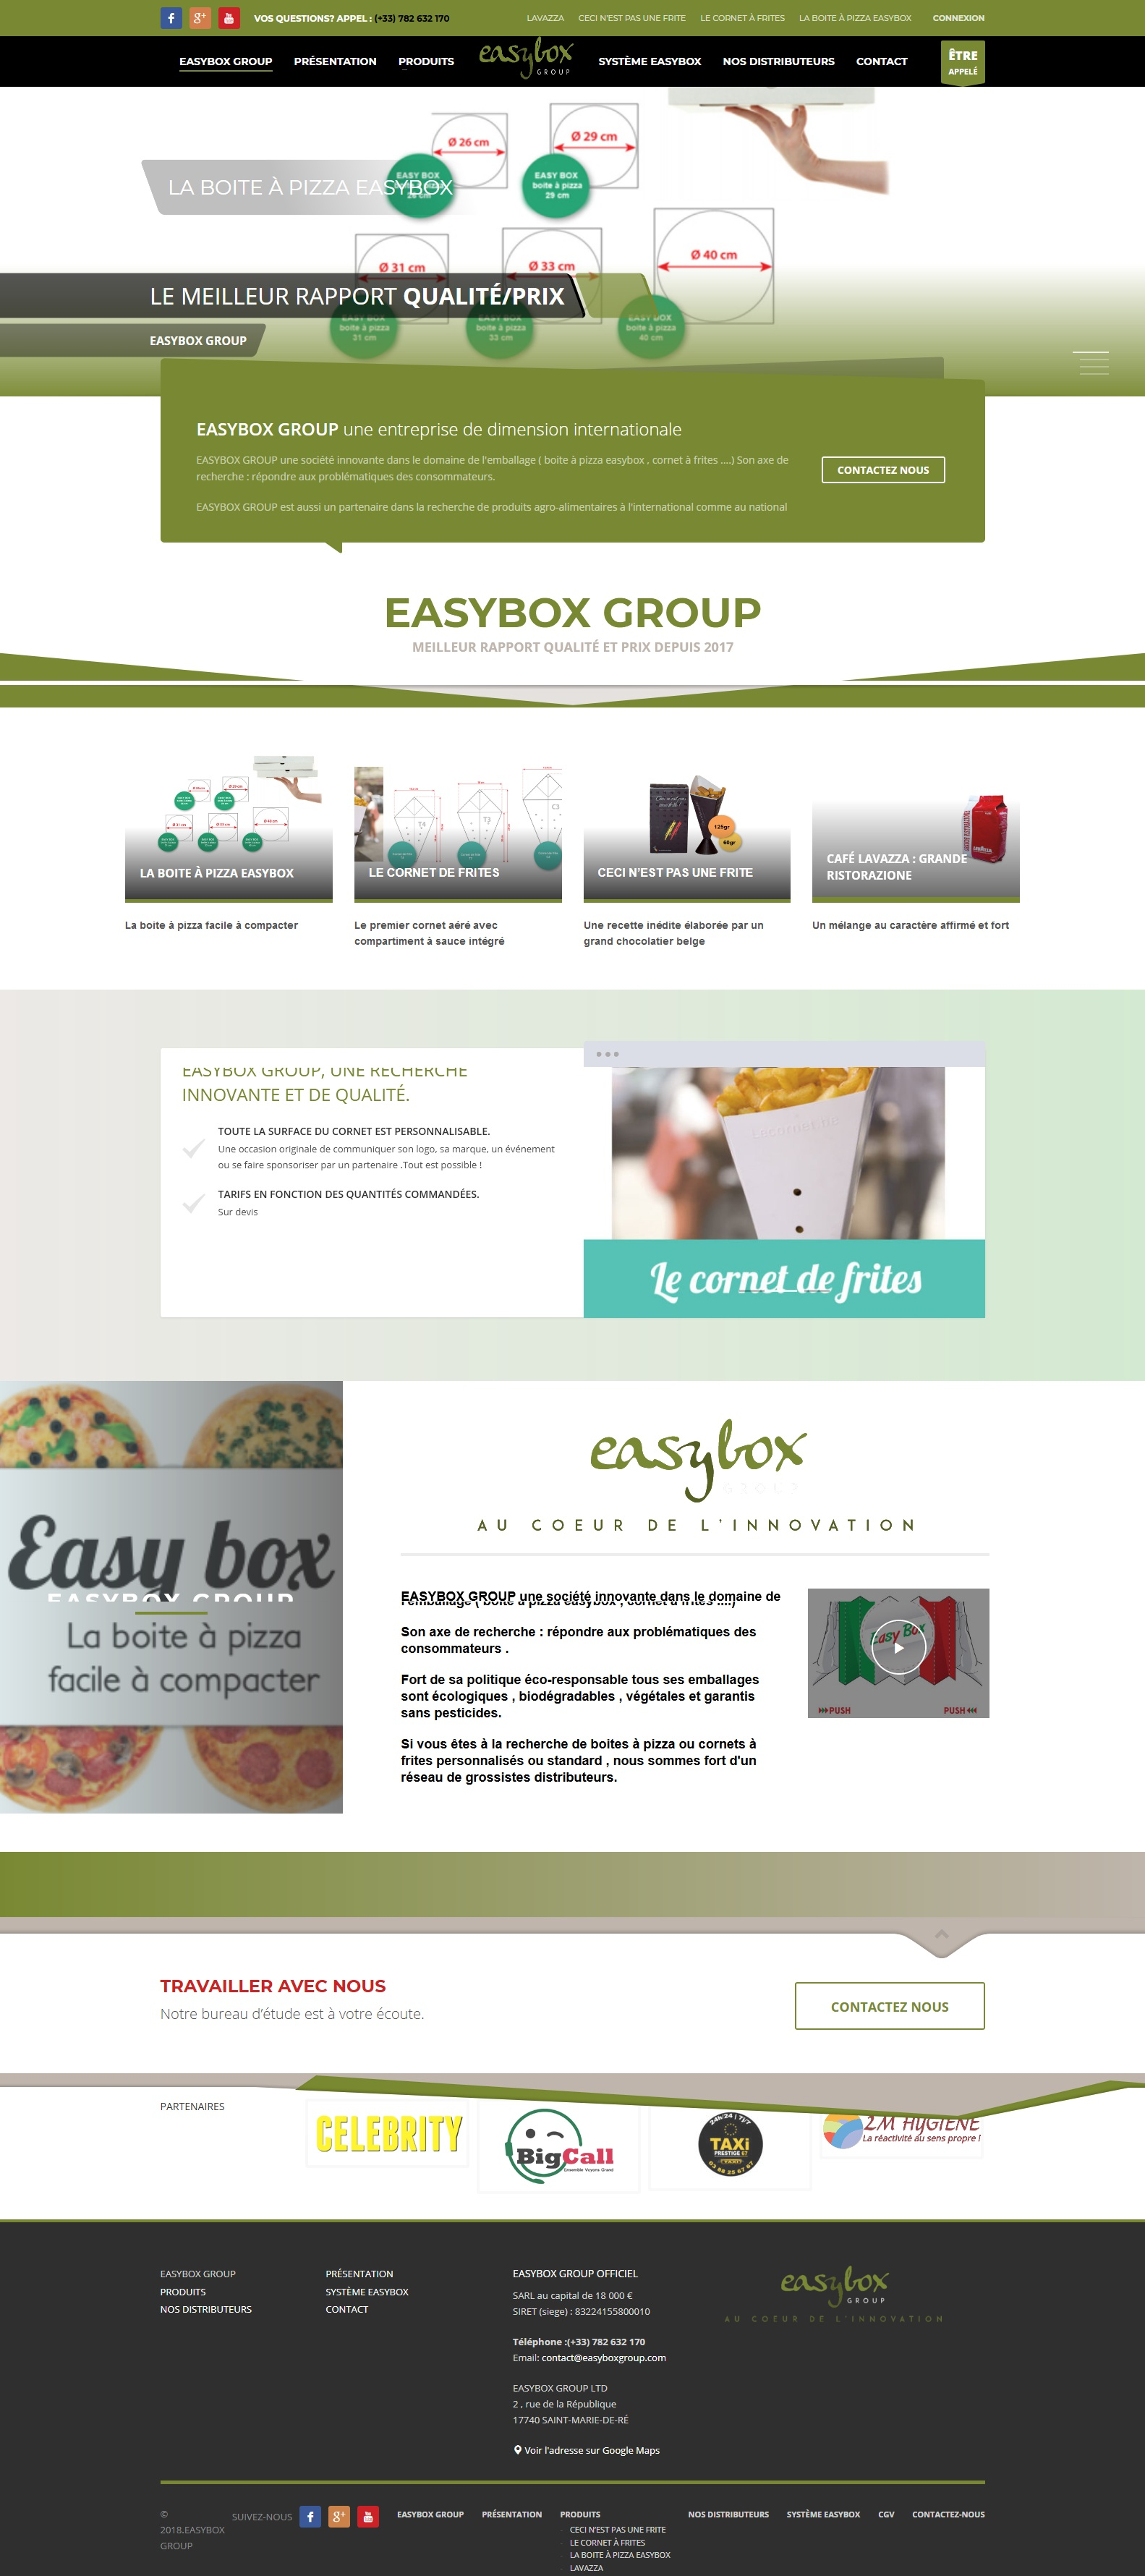 easybox-group